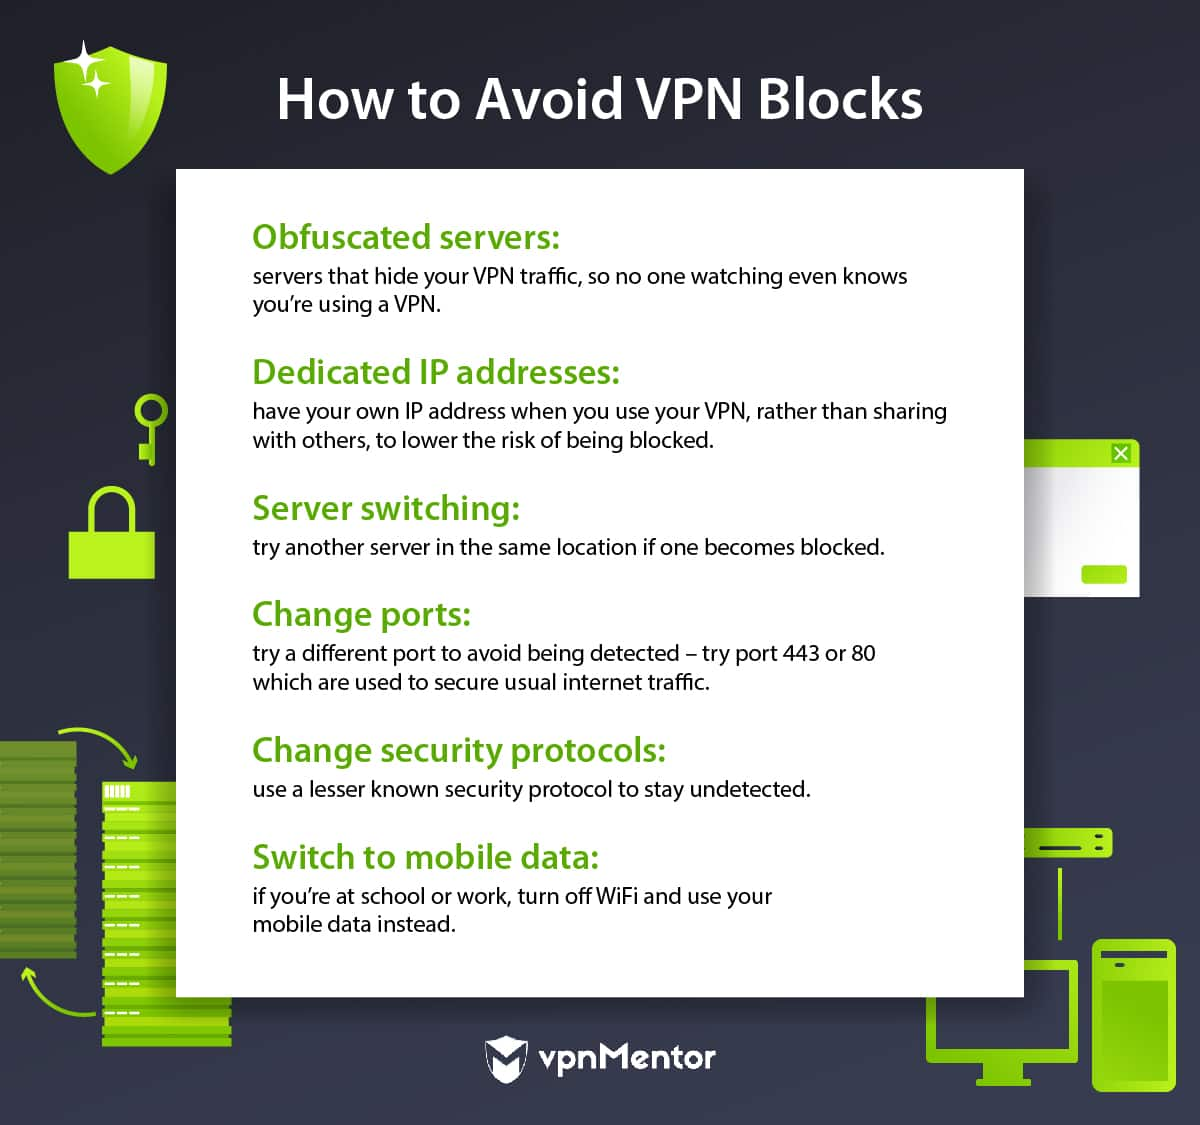 How to avoid VPN blocks